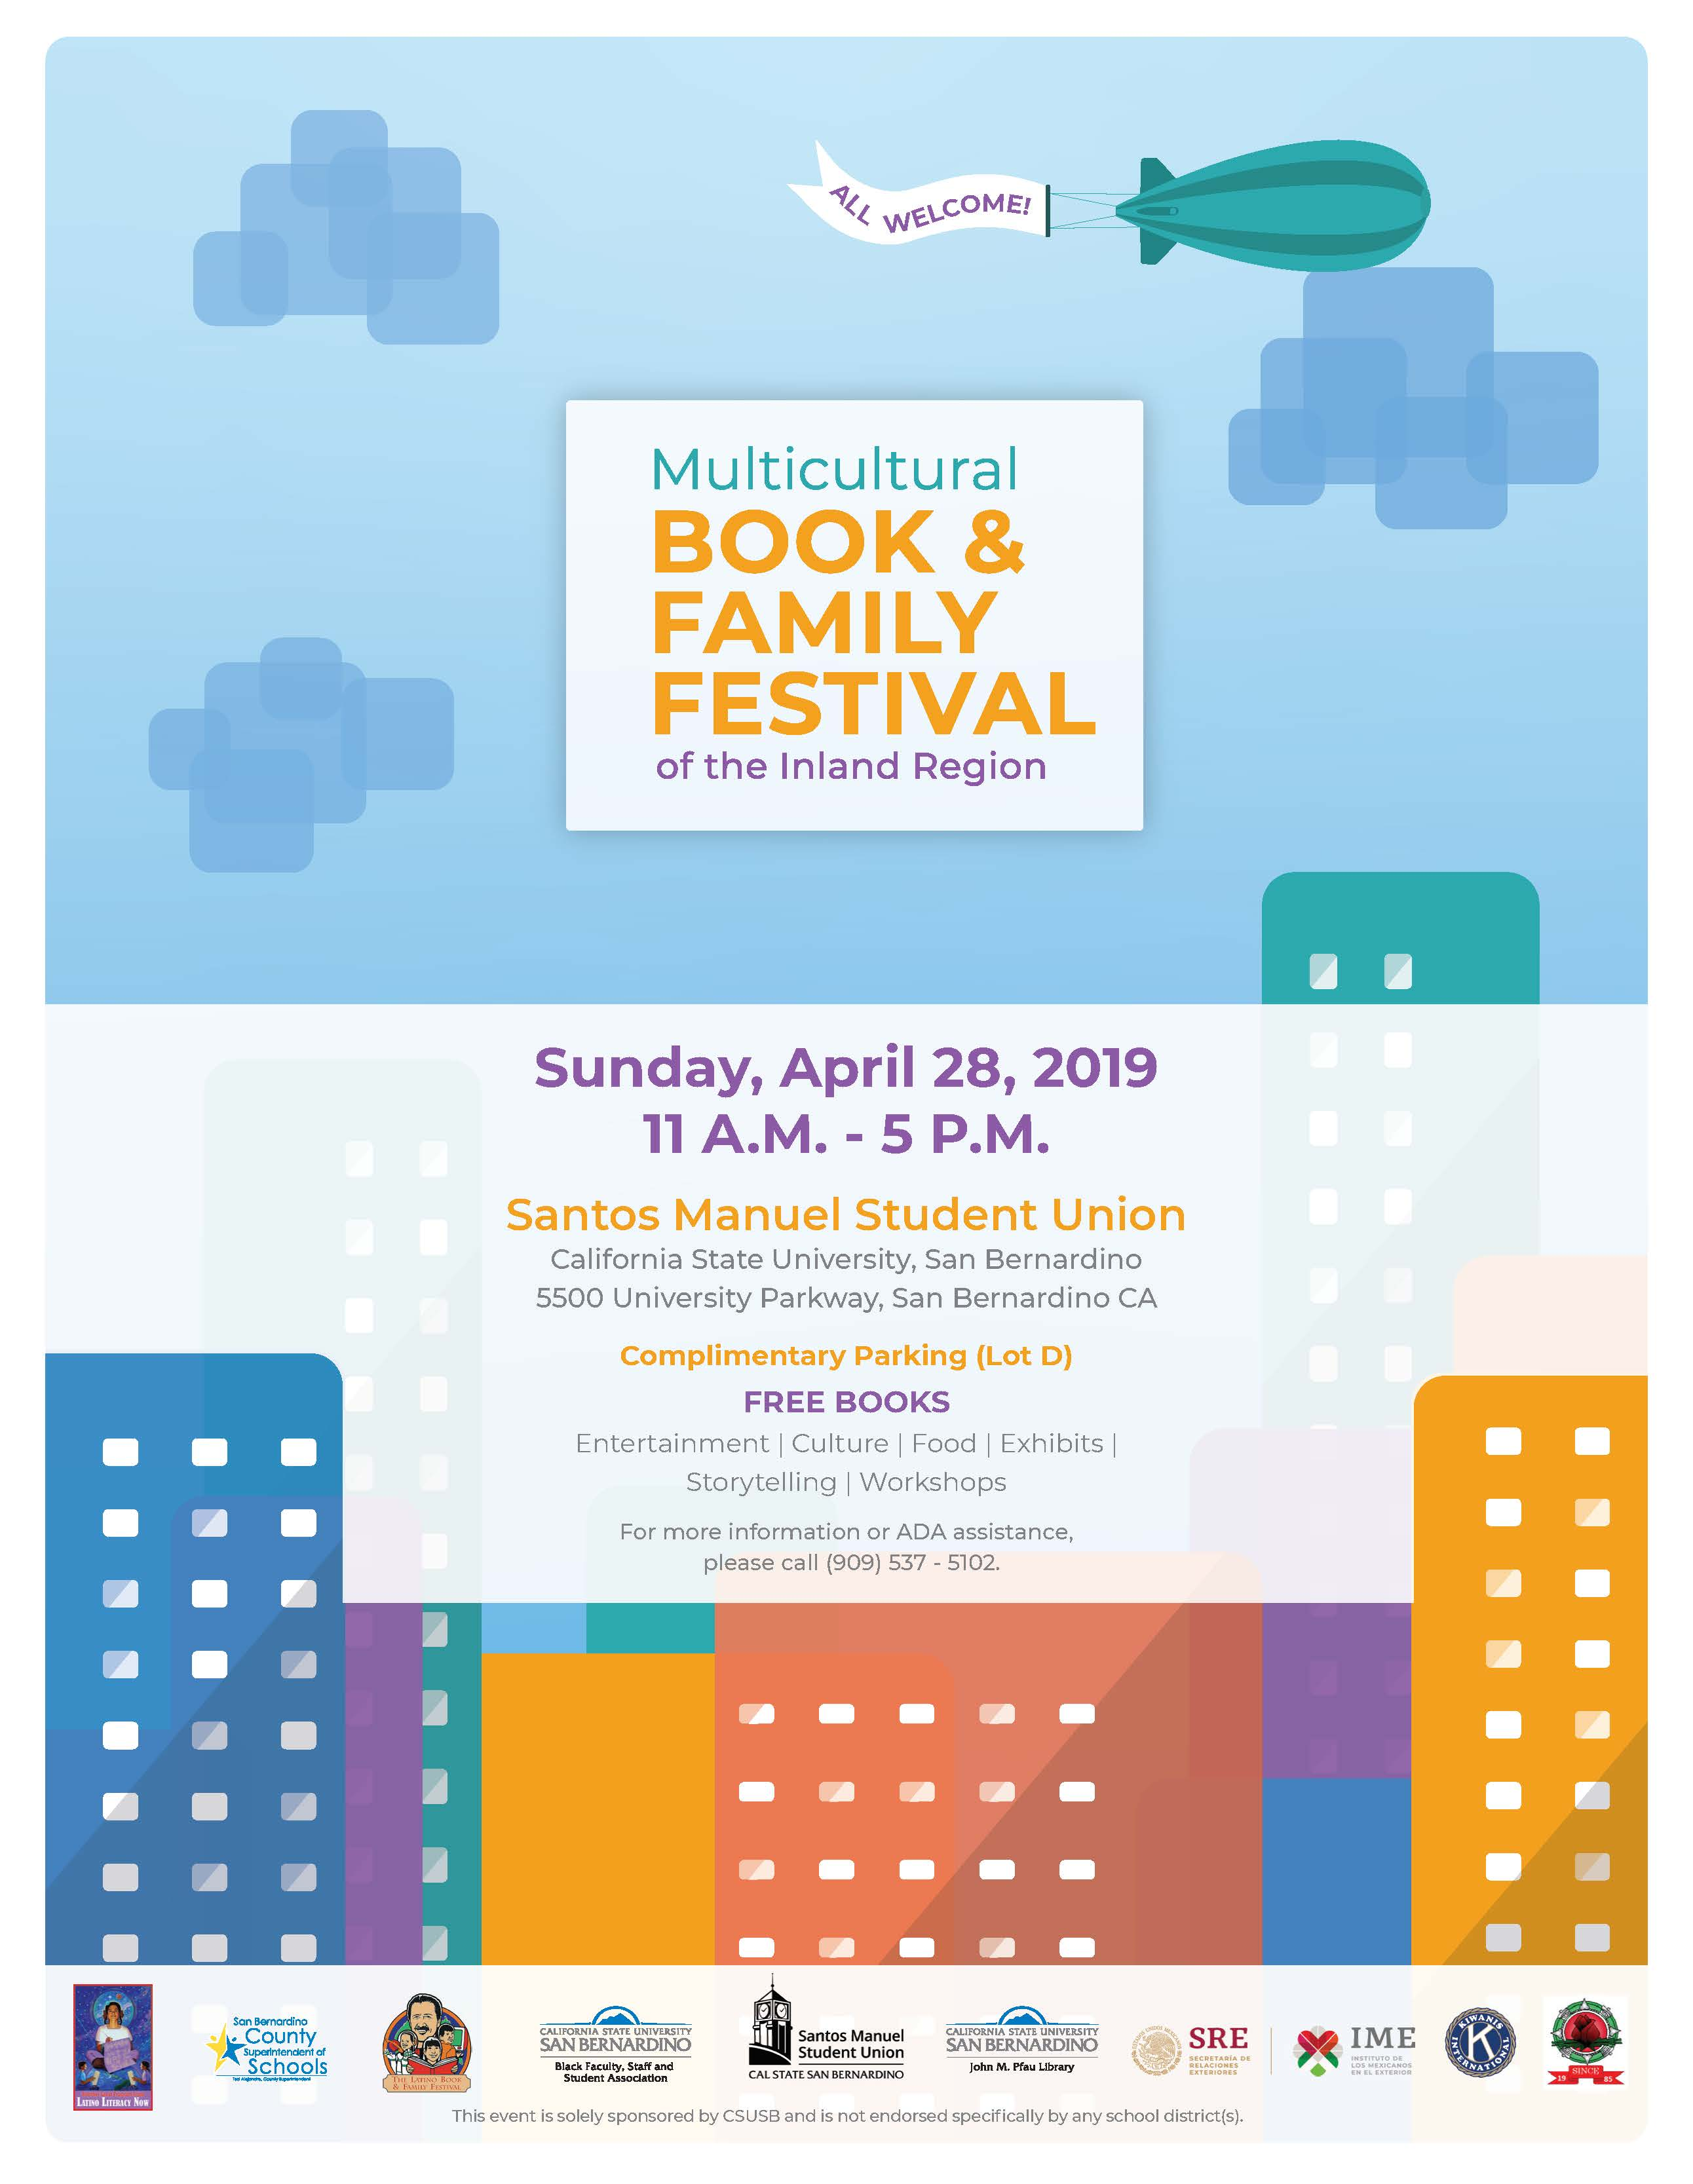 CSUSB's John M. Pfau Library to host Multicultural Book and Family Festival